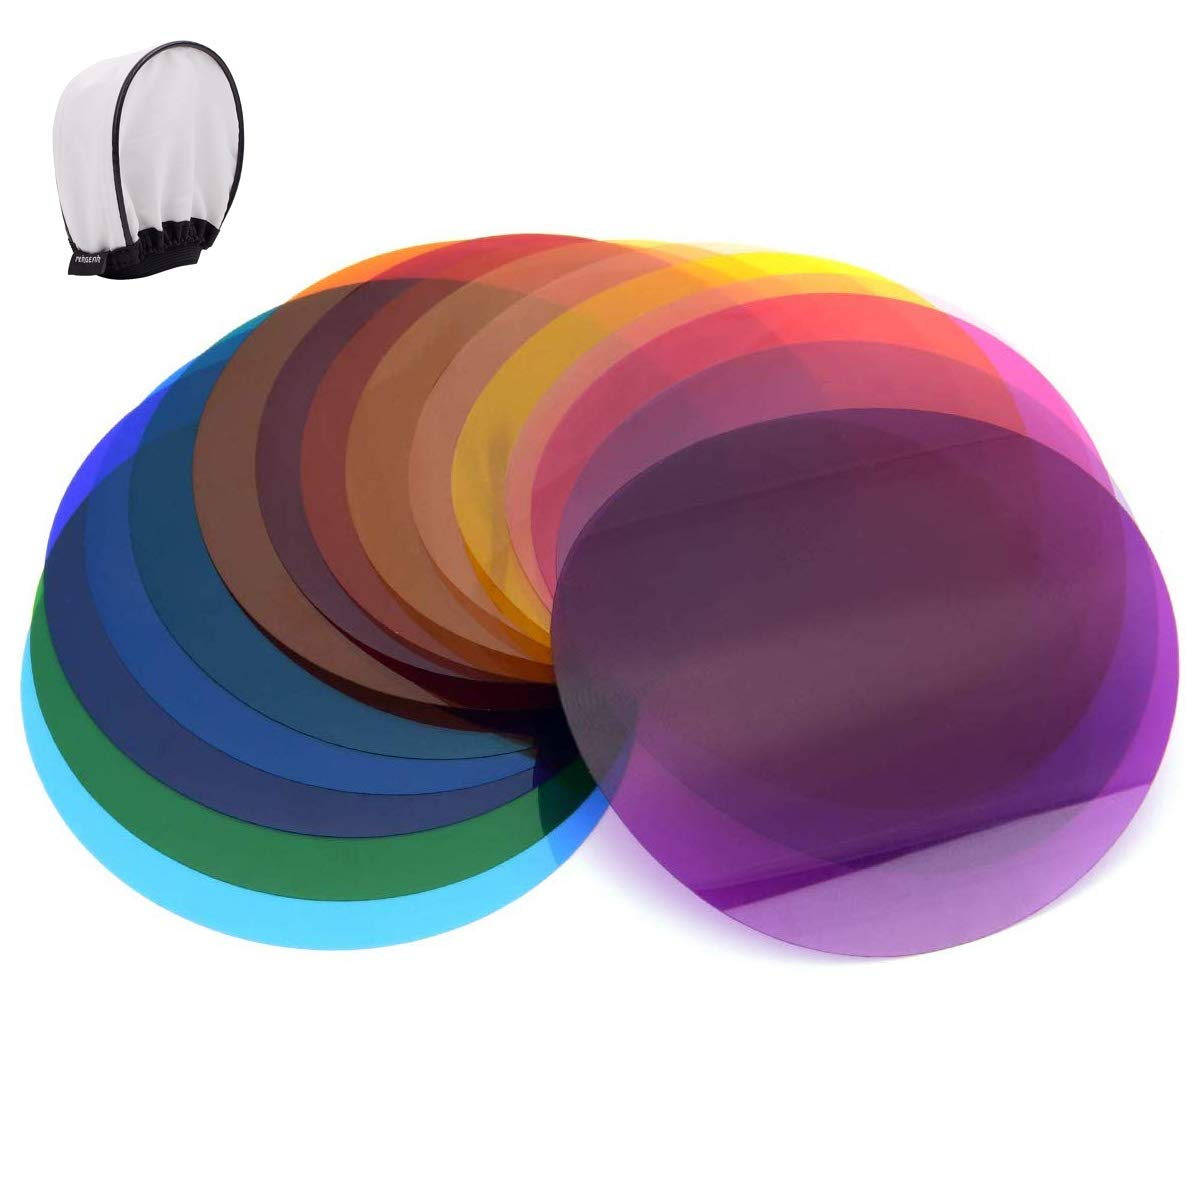 Godox V-11C Color Filters for Create Color Effects, Used with AK-R16 Diffuser Plate or AK-R1 kit,Compatible with Round Head Flash Godox V1-C,V1-N,V1-S,V1-O,V1-P,AD200 AD200PRO with H200R Ring Flash He